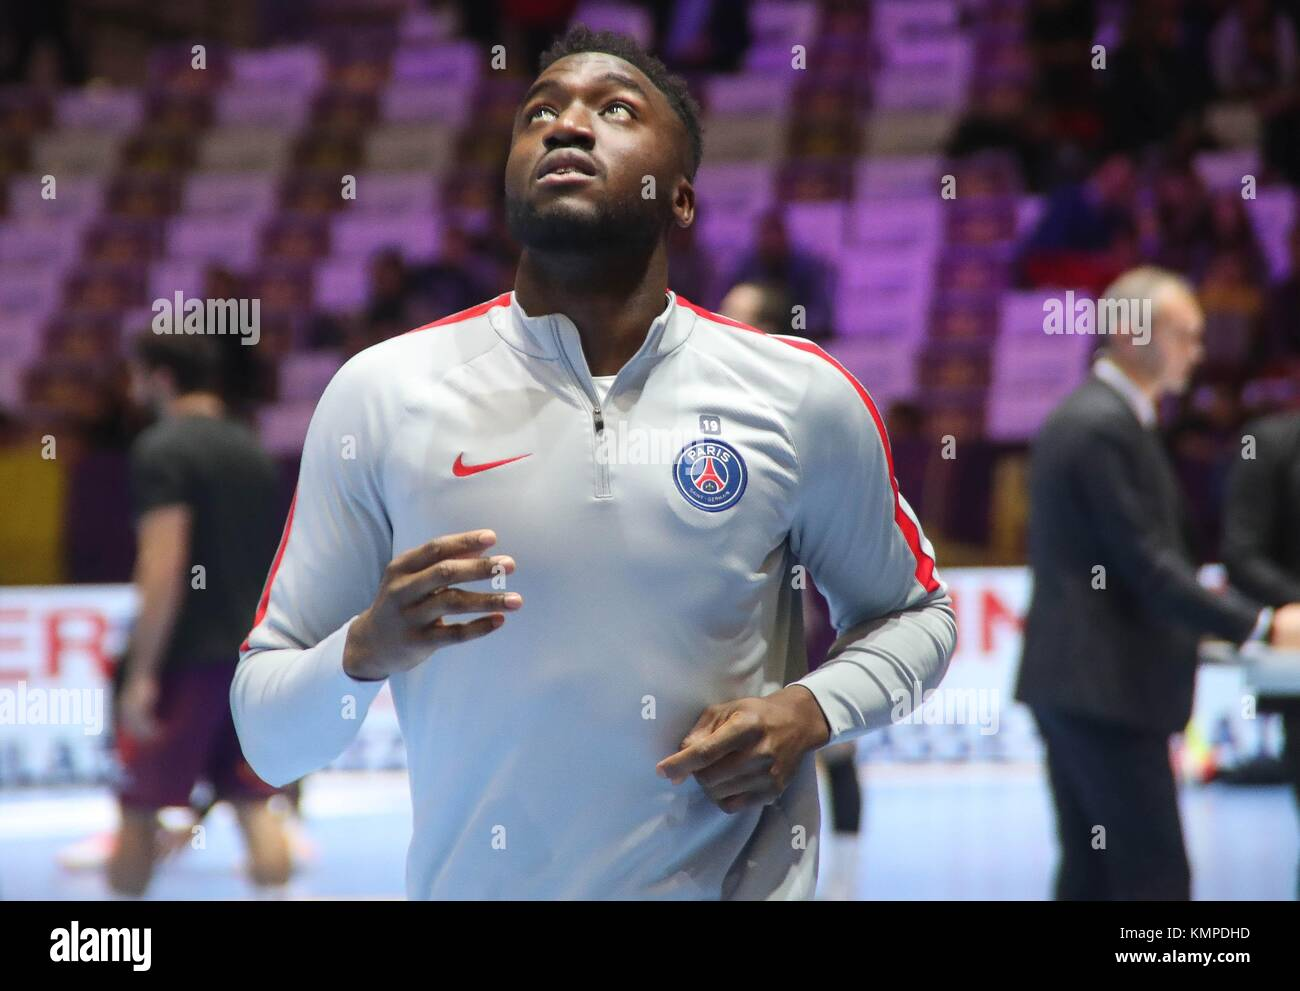 Nantes, France. 07th Dec, 2017. Luc Abalo (Paris Saint Germain) during the French Championship Lidl StarLigue Handball Stock Photo